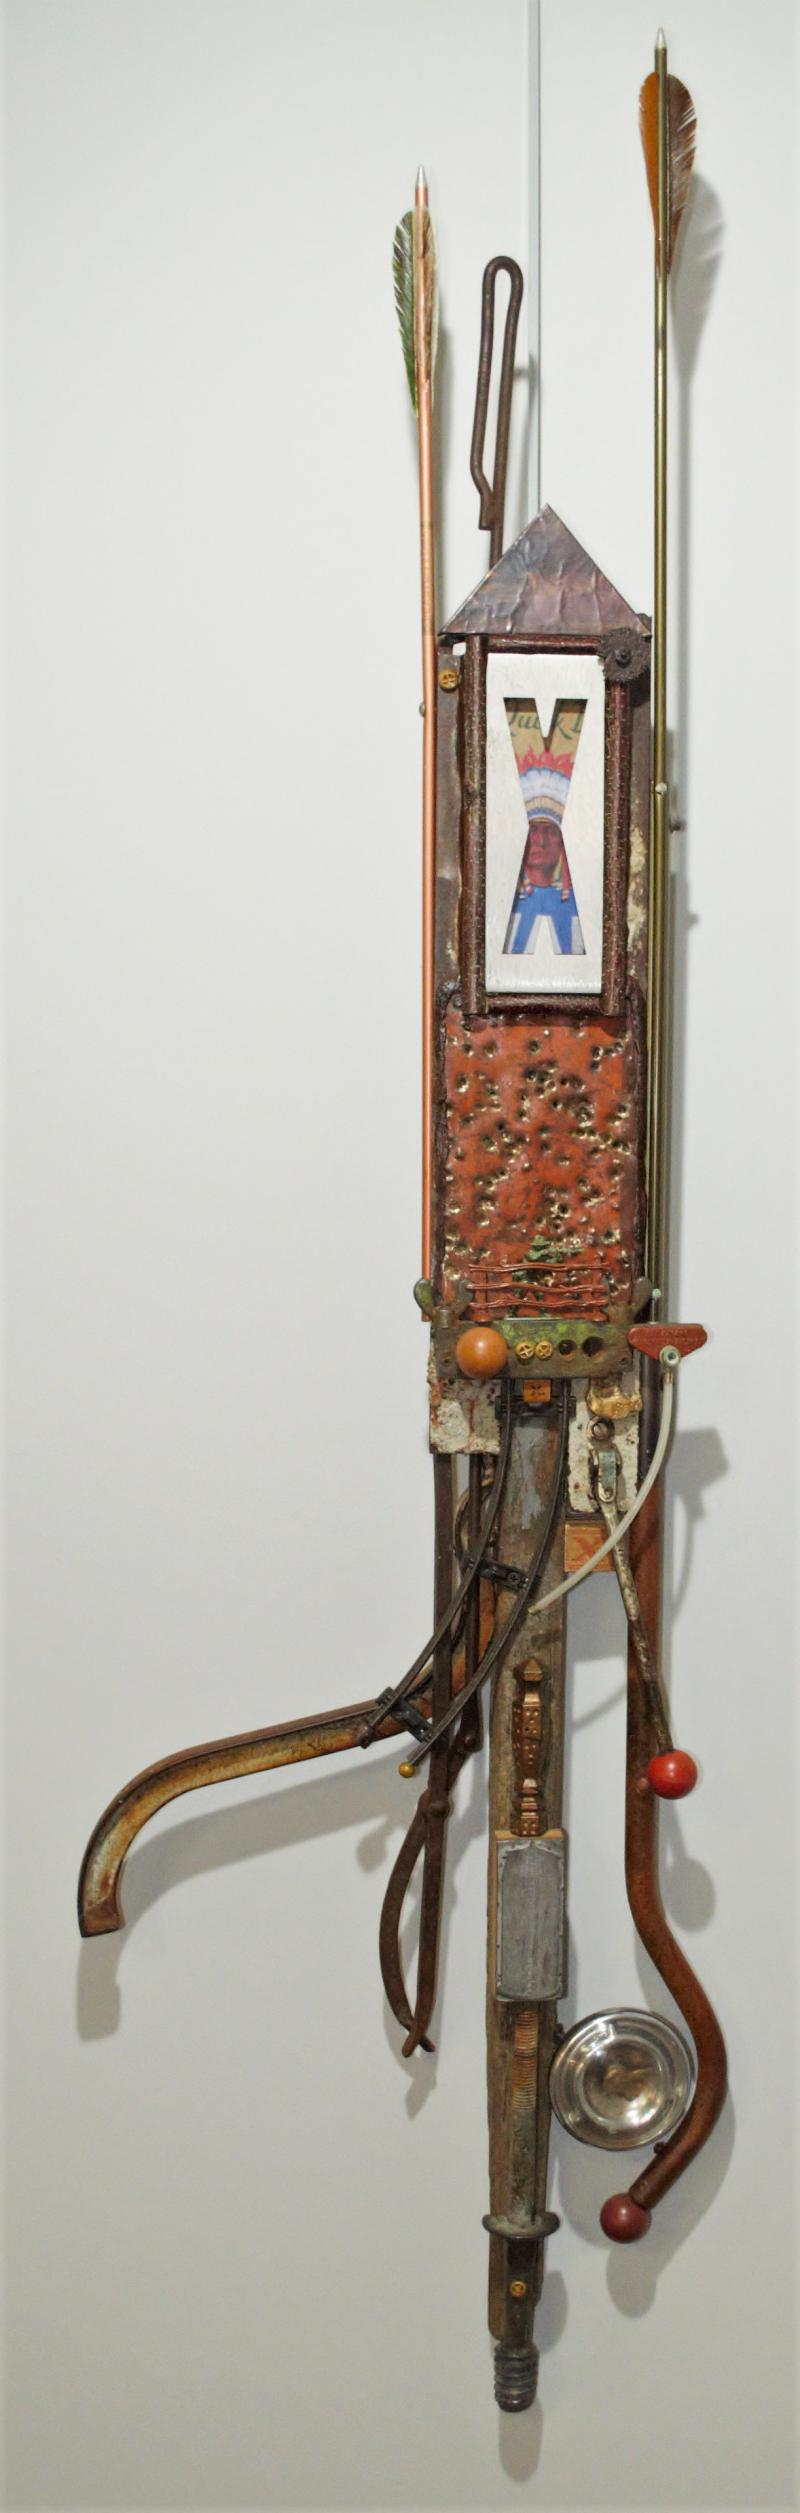 Stolen Stars, found object assemblage by Gary Carlson of Rush City, MN